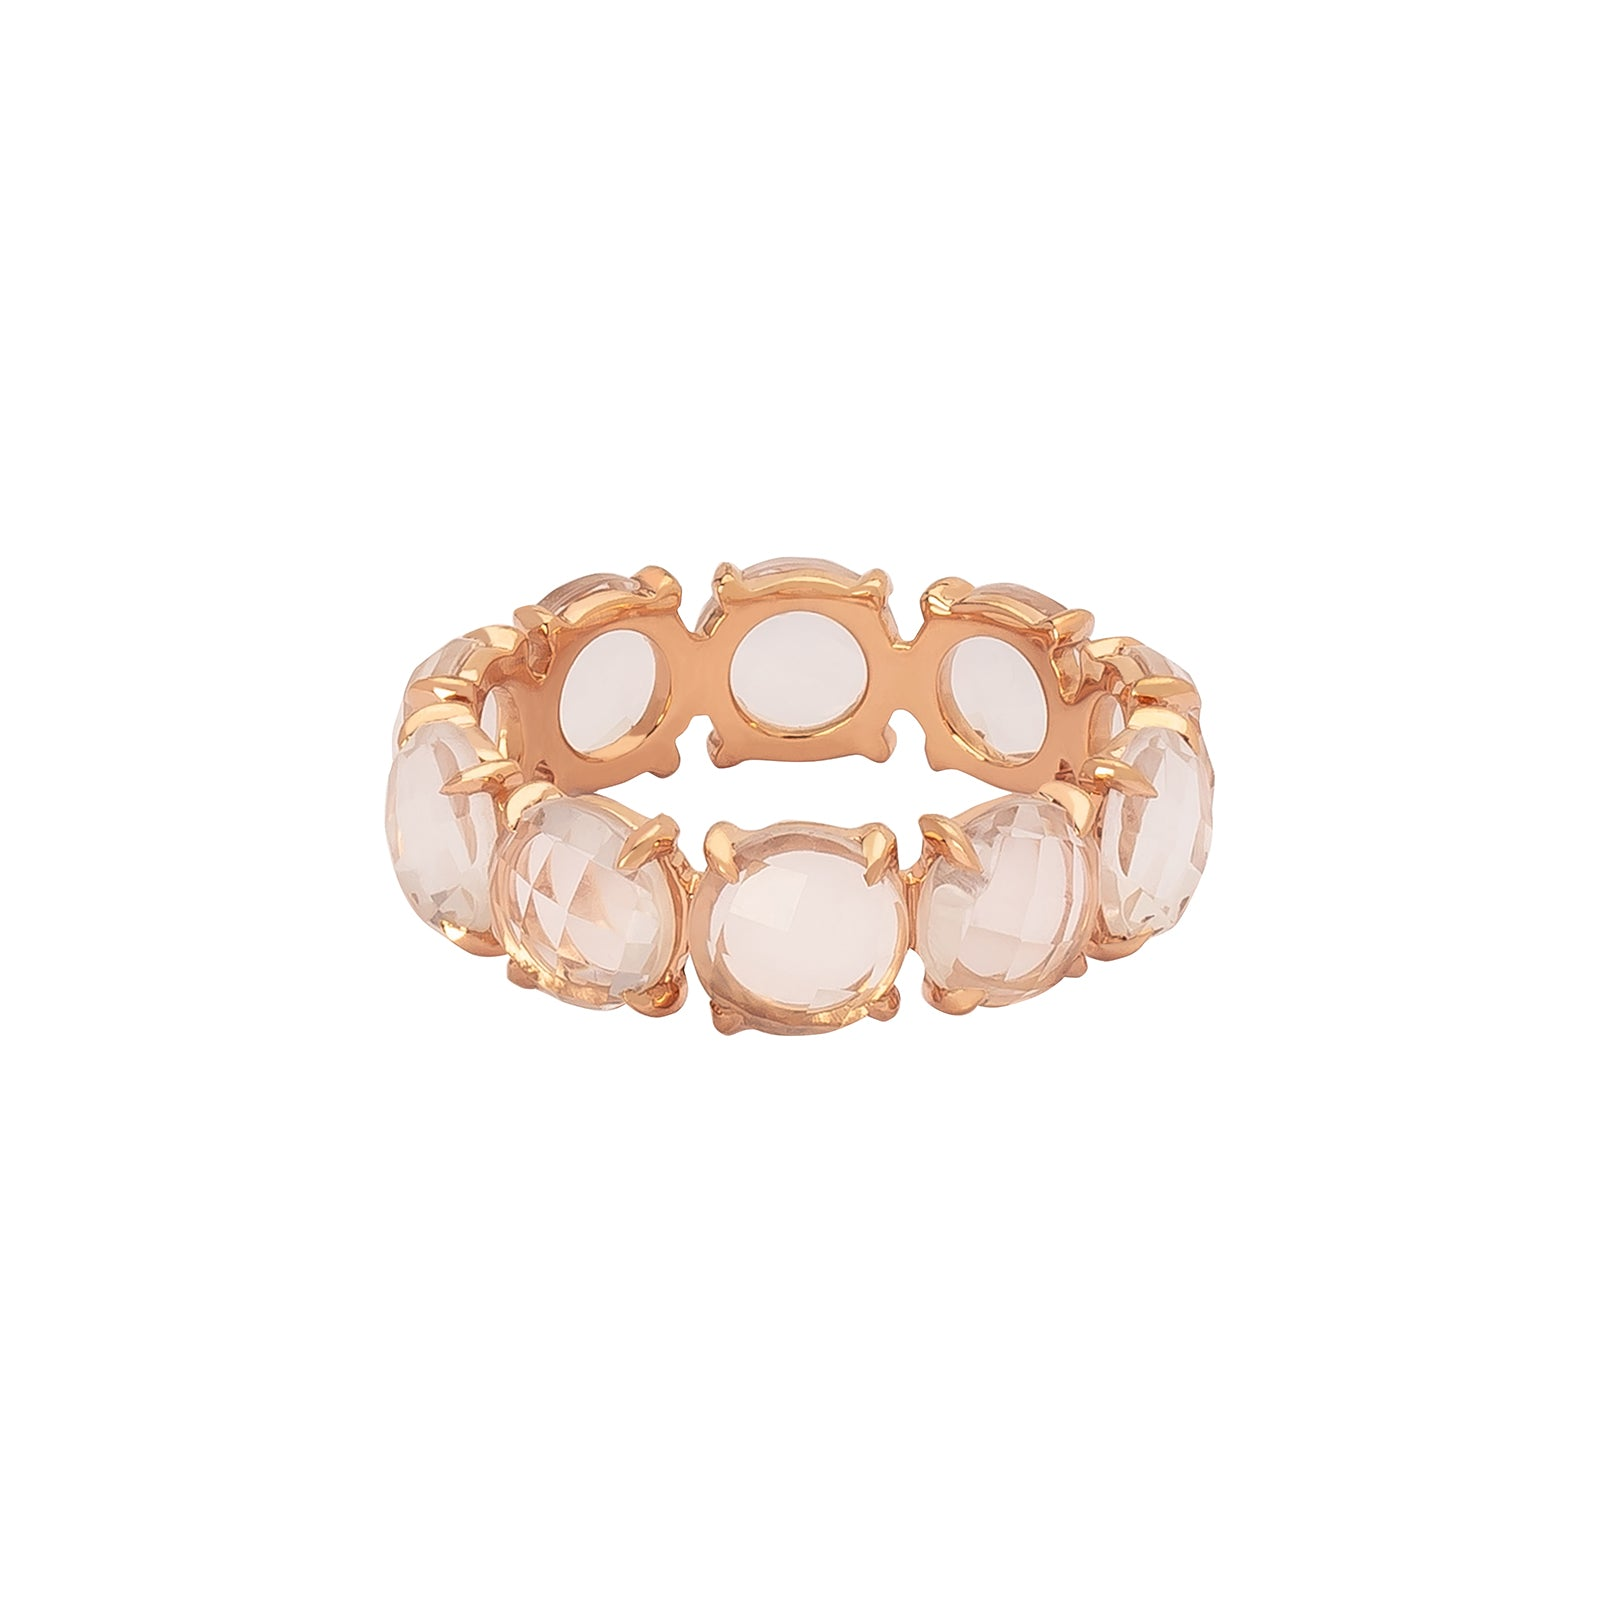 Bondeye Rock Crystal Eternity Ring - Rose Gold - Rings - Broken English Jewelry